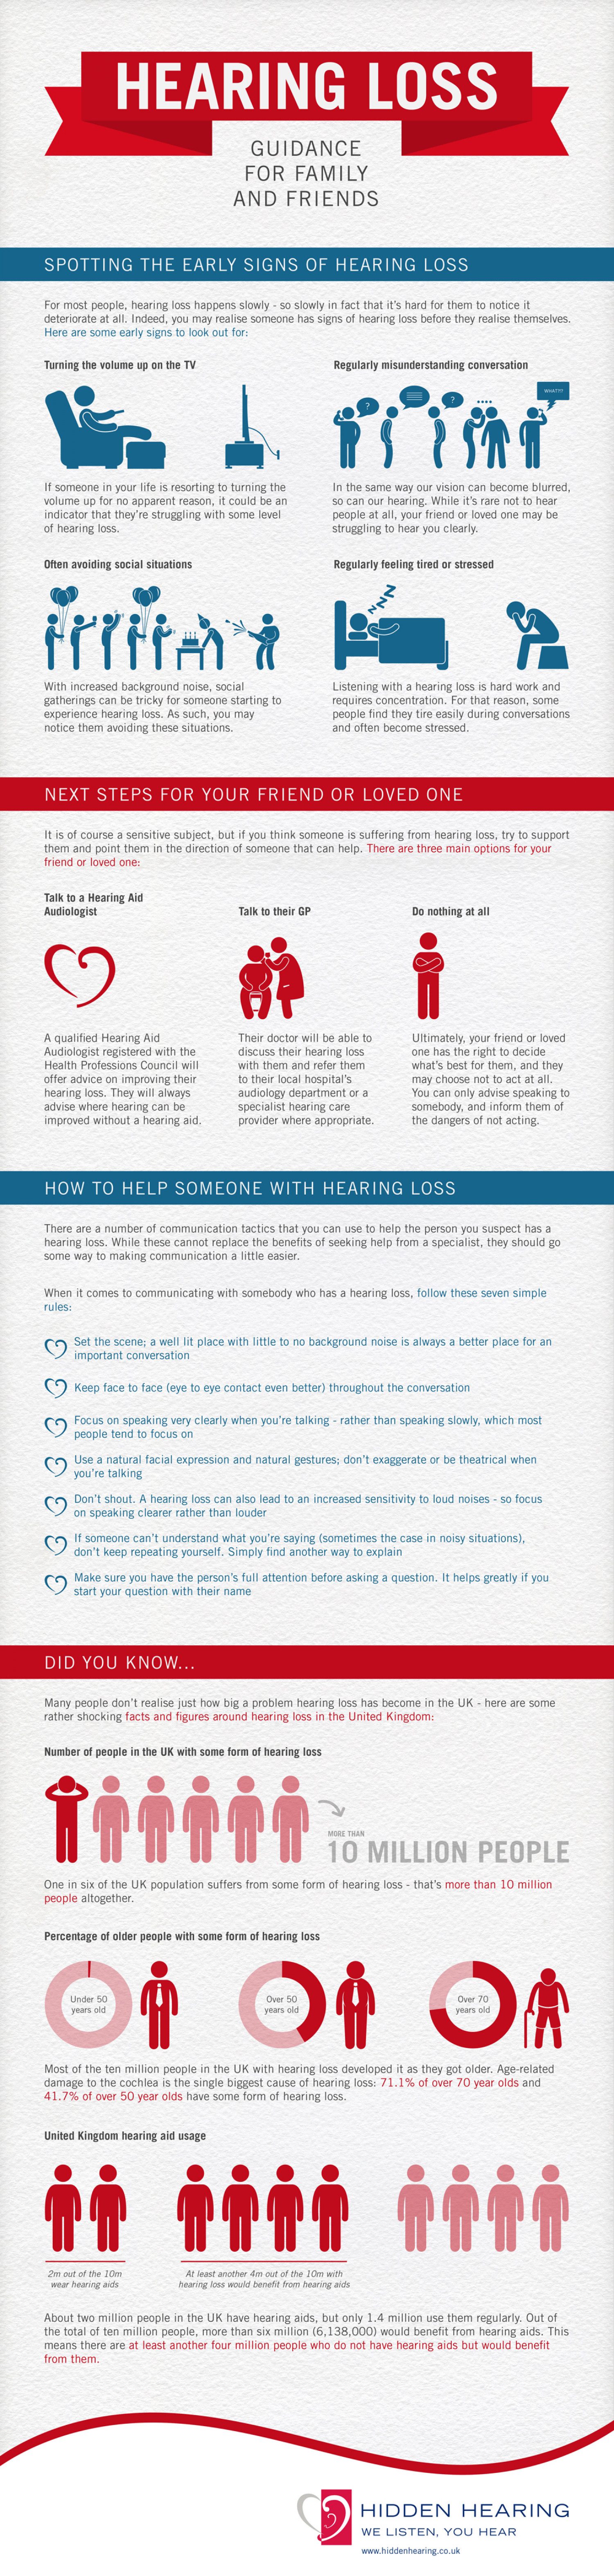 Hearing Loss - Guidance for Family and Friends Infographic